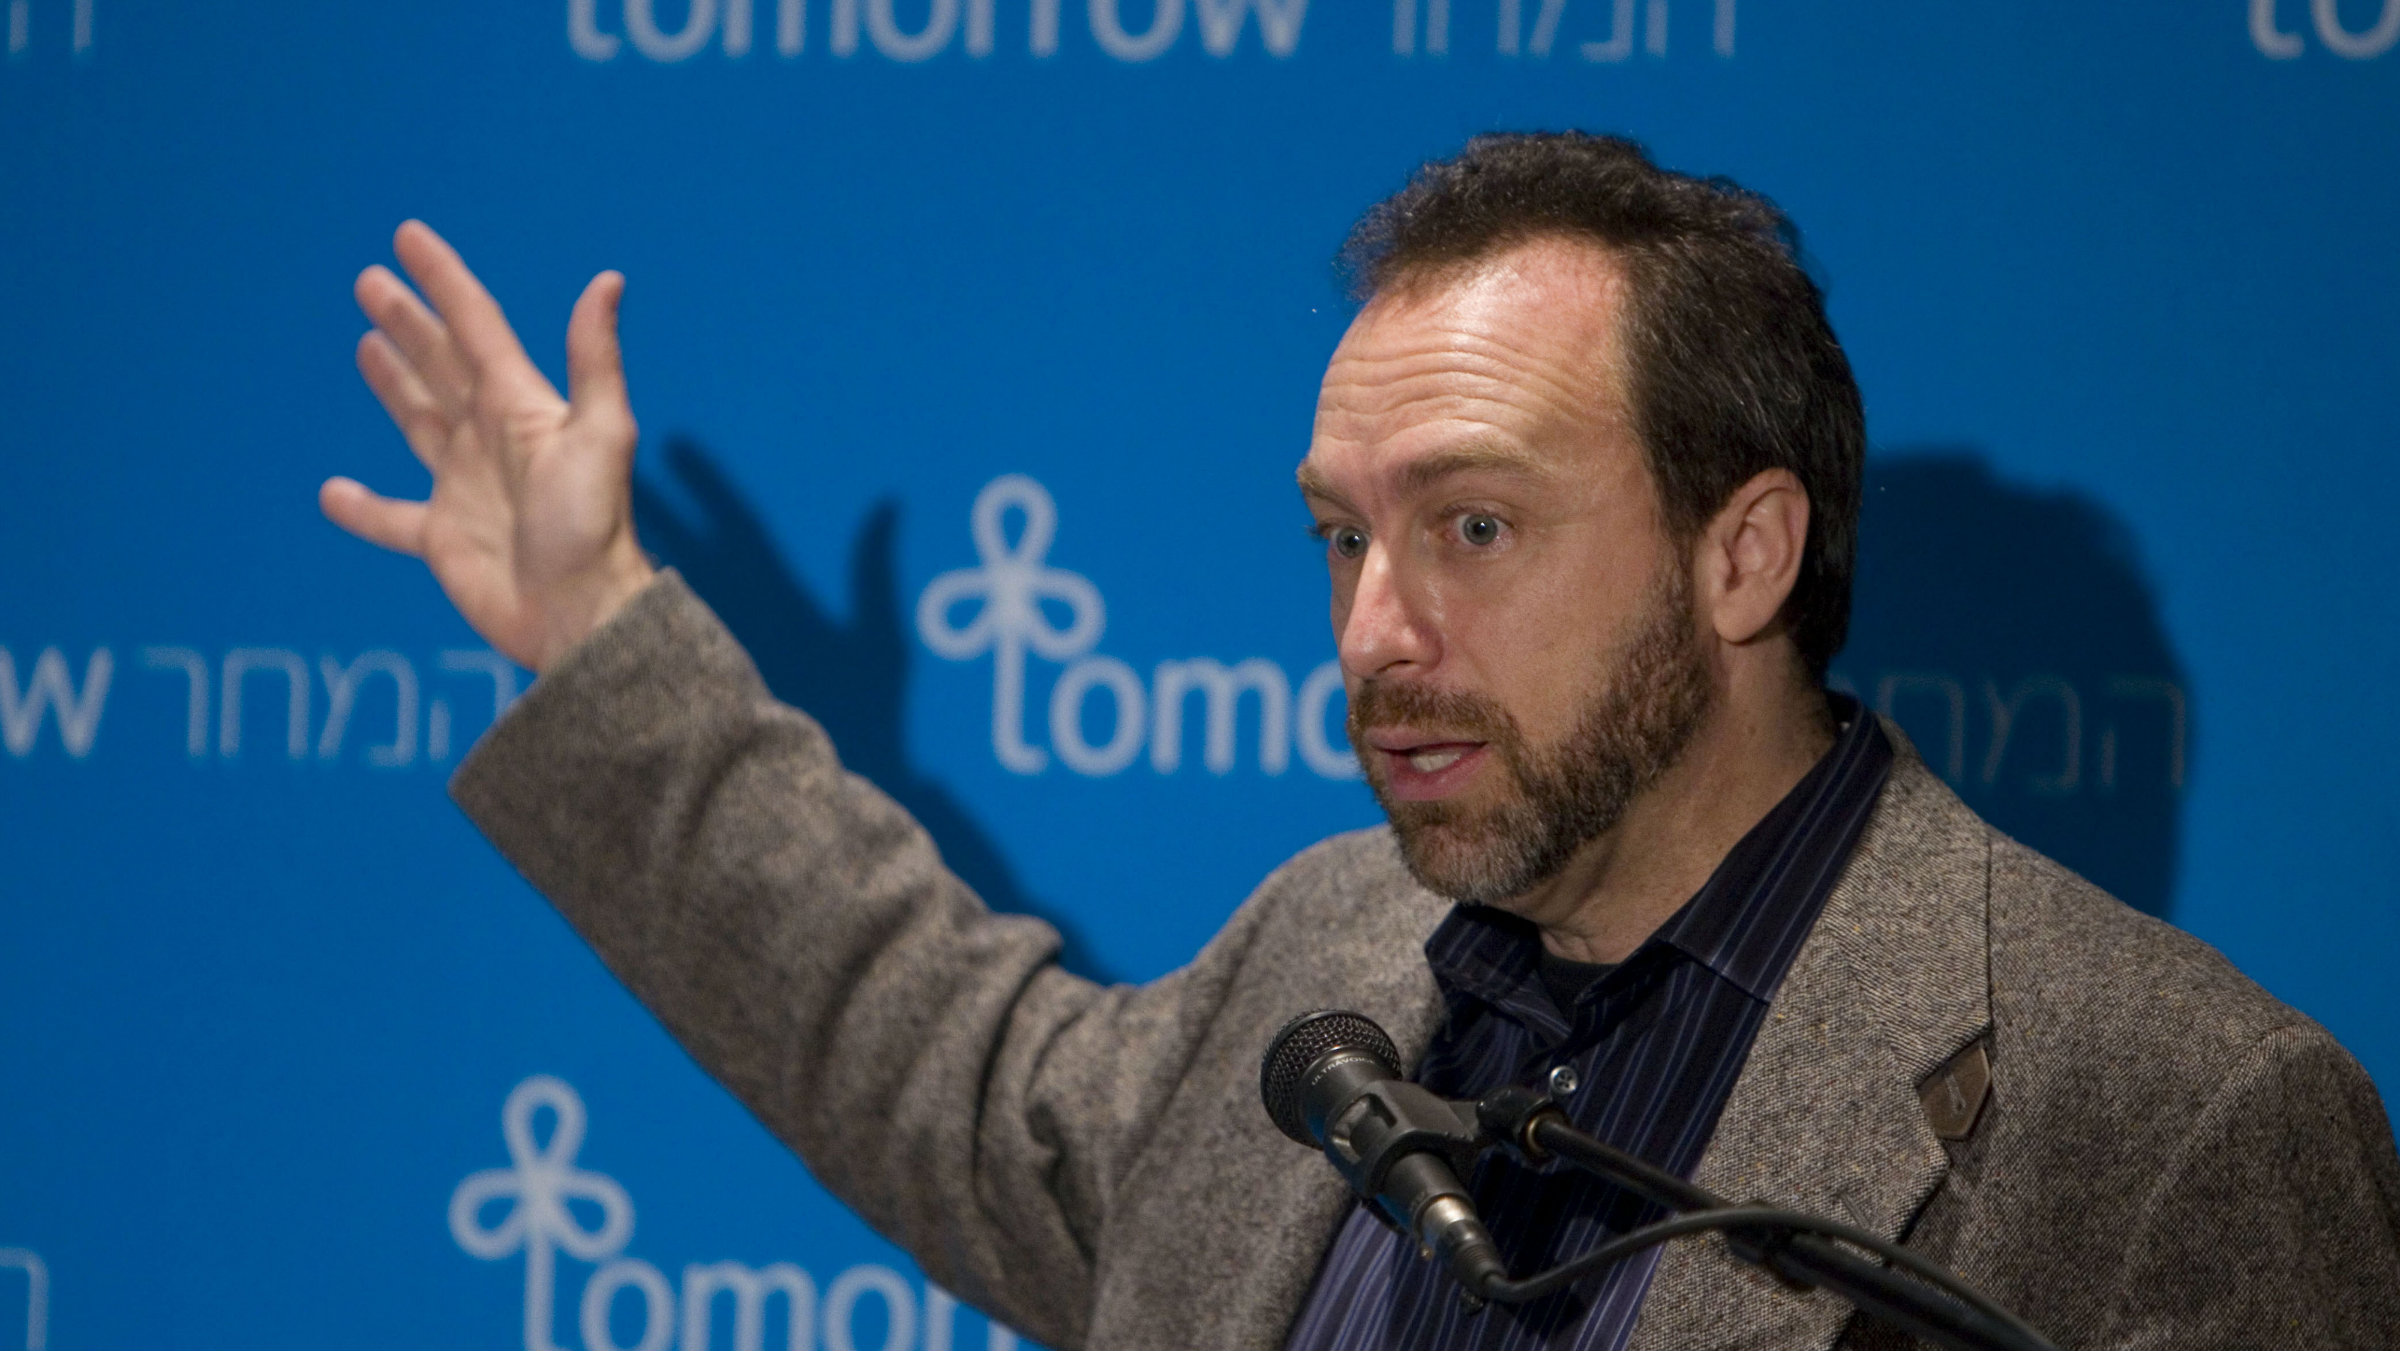 Ready for takeoff? Jimmy Wales says Wikivoyage will launch soon.